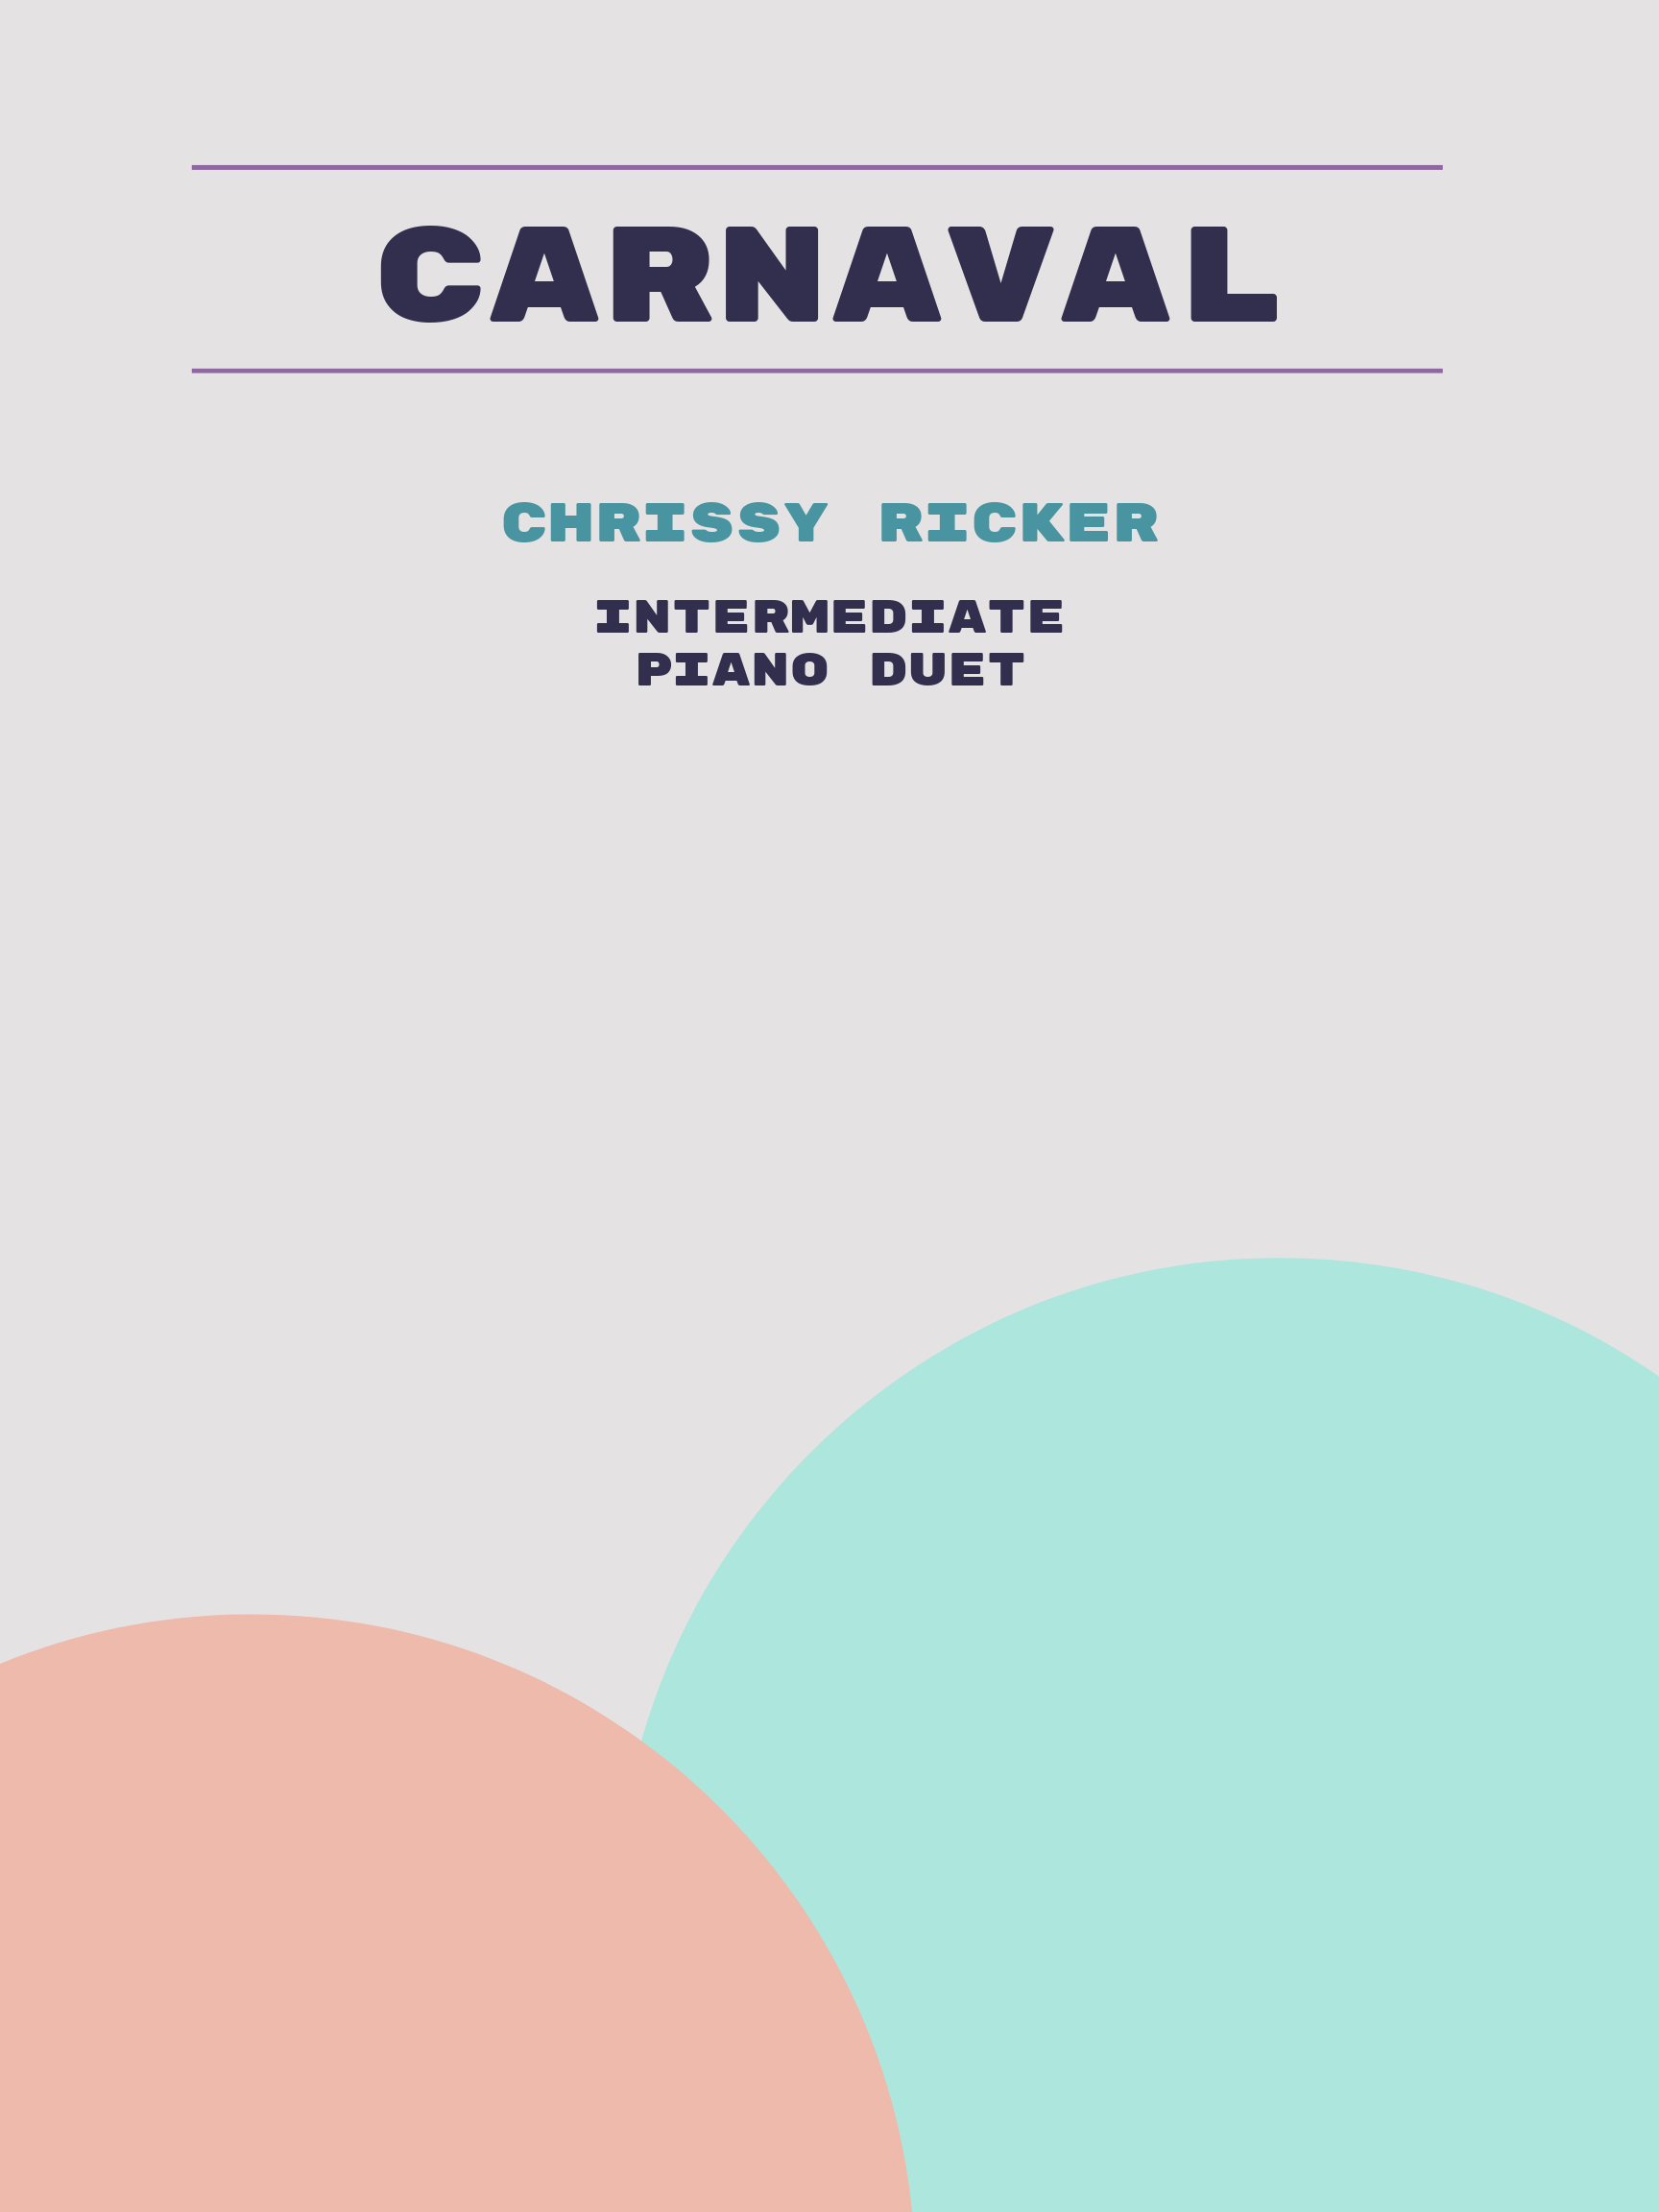 Carnaval by Chrissy Ricker